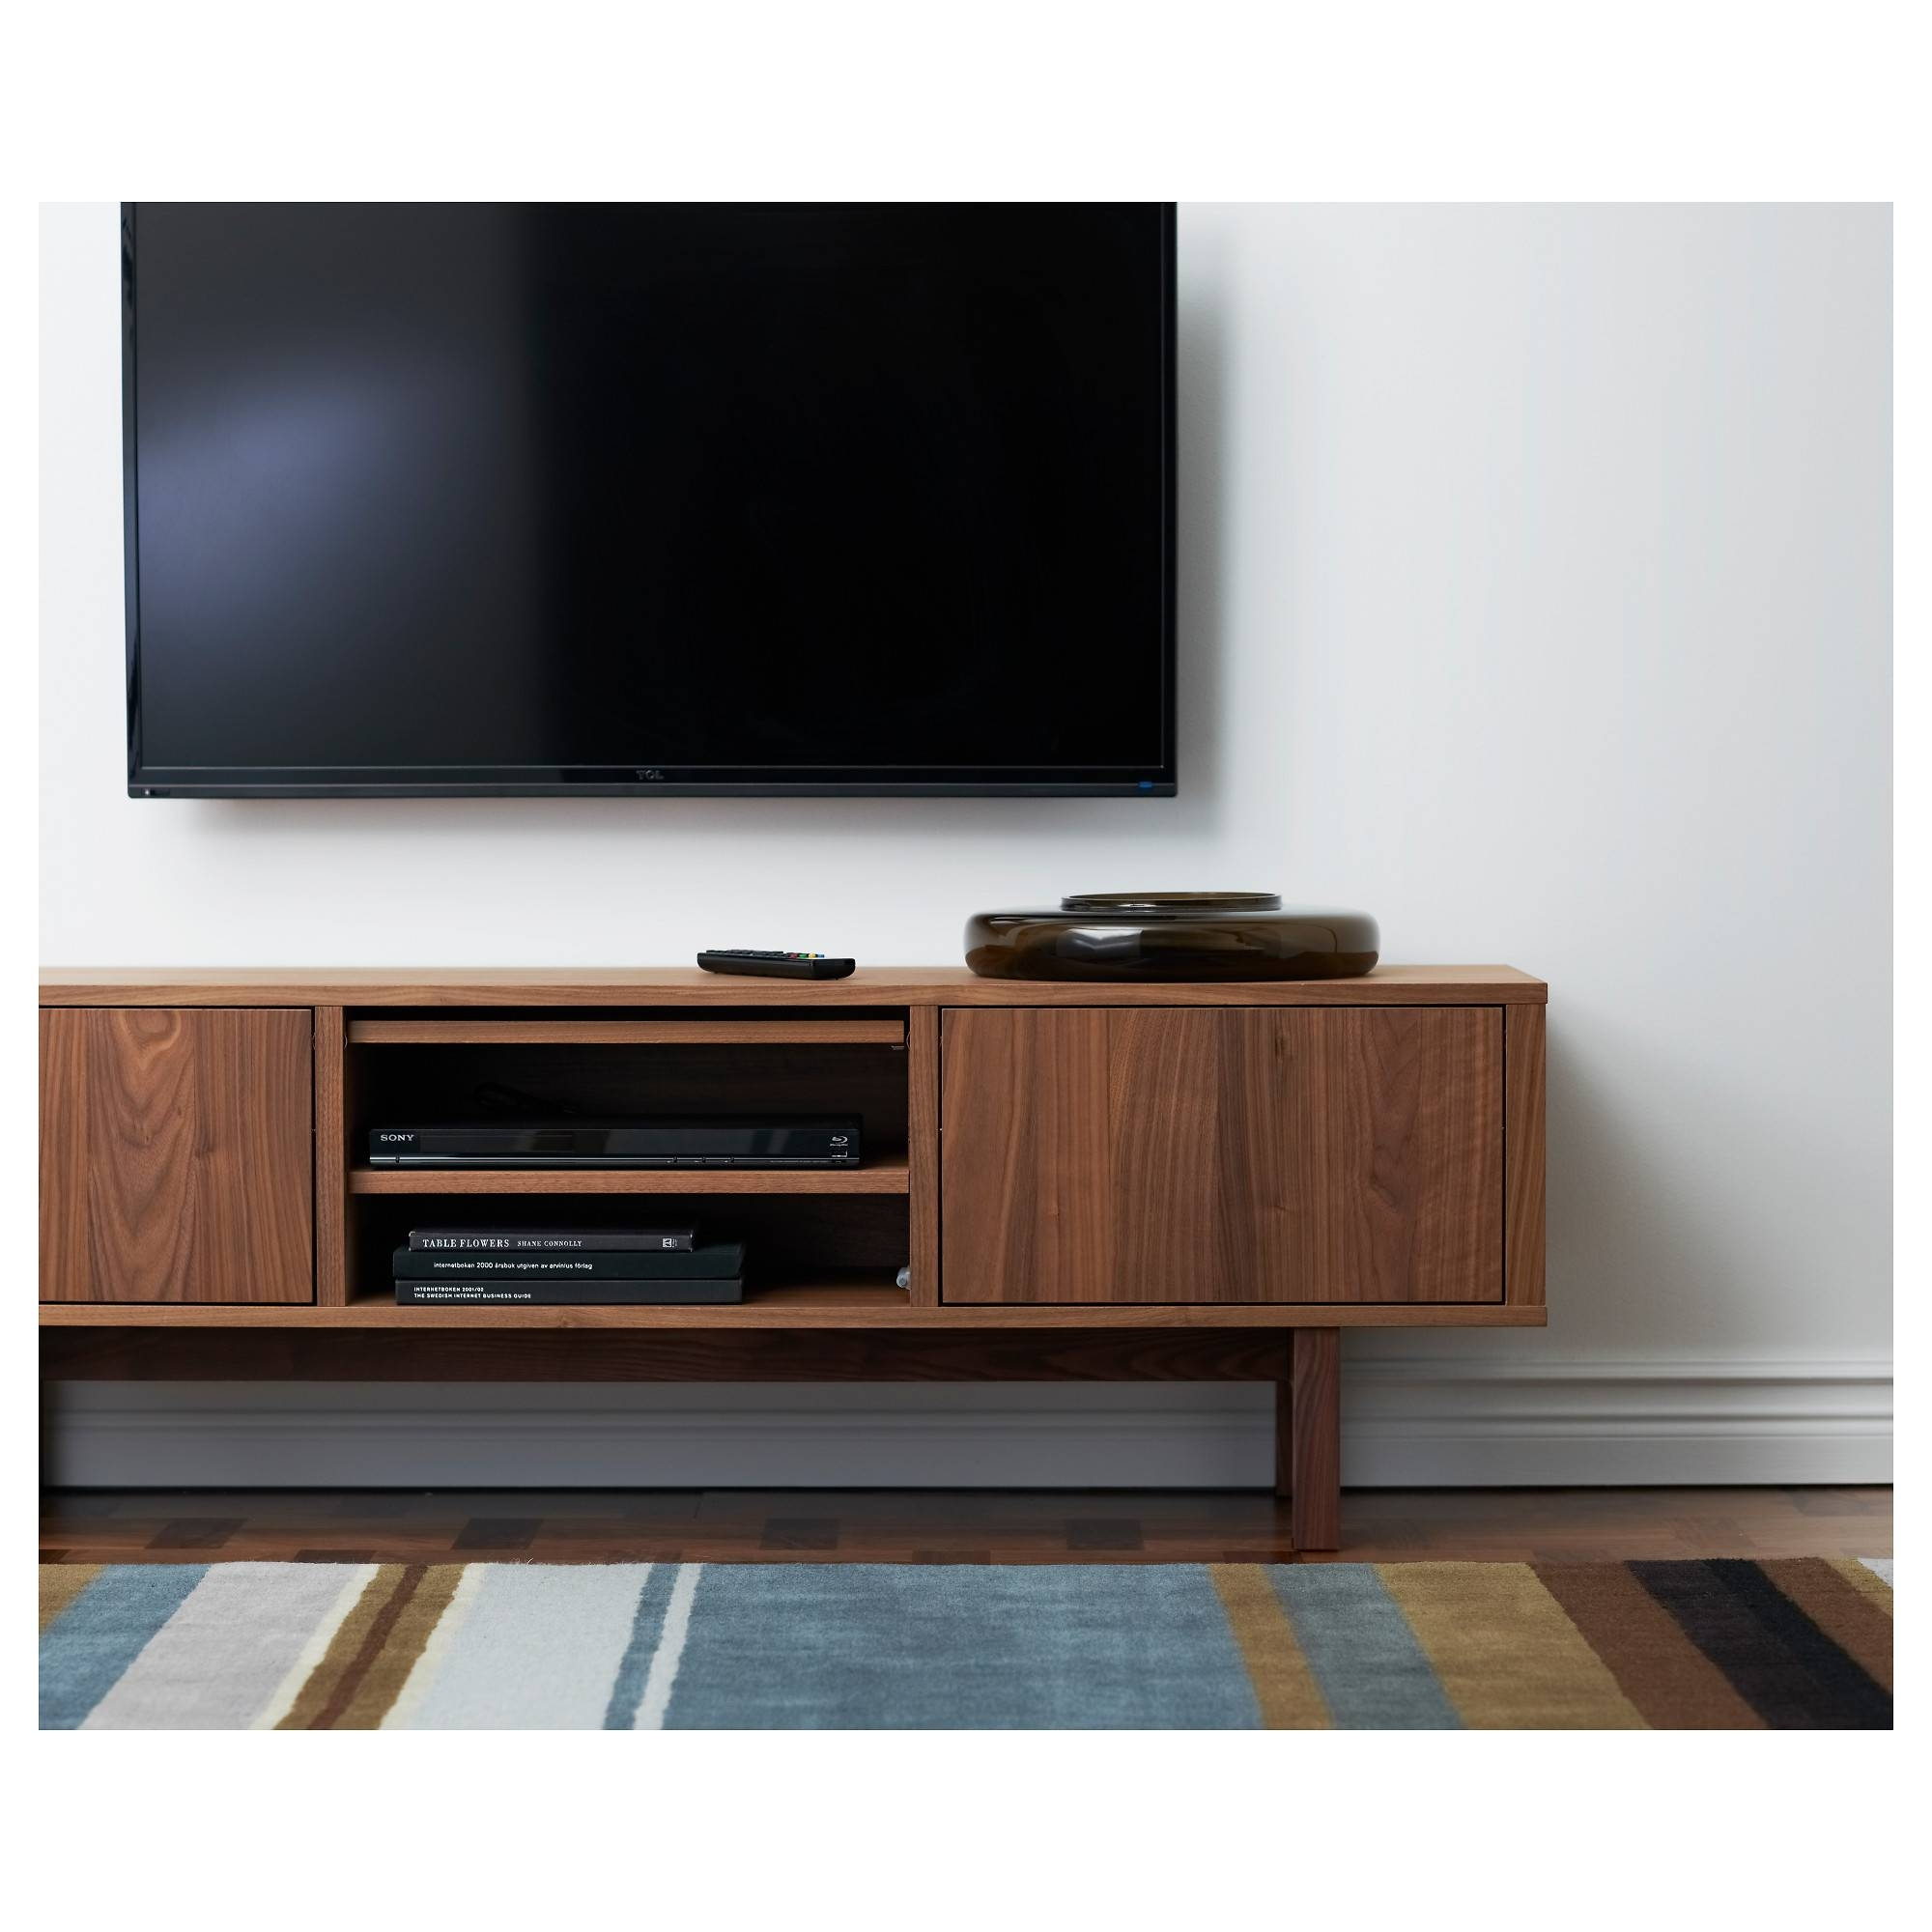 Stockholm Tv Bench Walnut Veneer 160x40 Cm – Ikea Pertaining To Walnut Tv Stands (View 2 of 15)